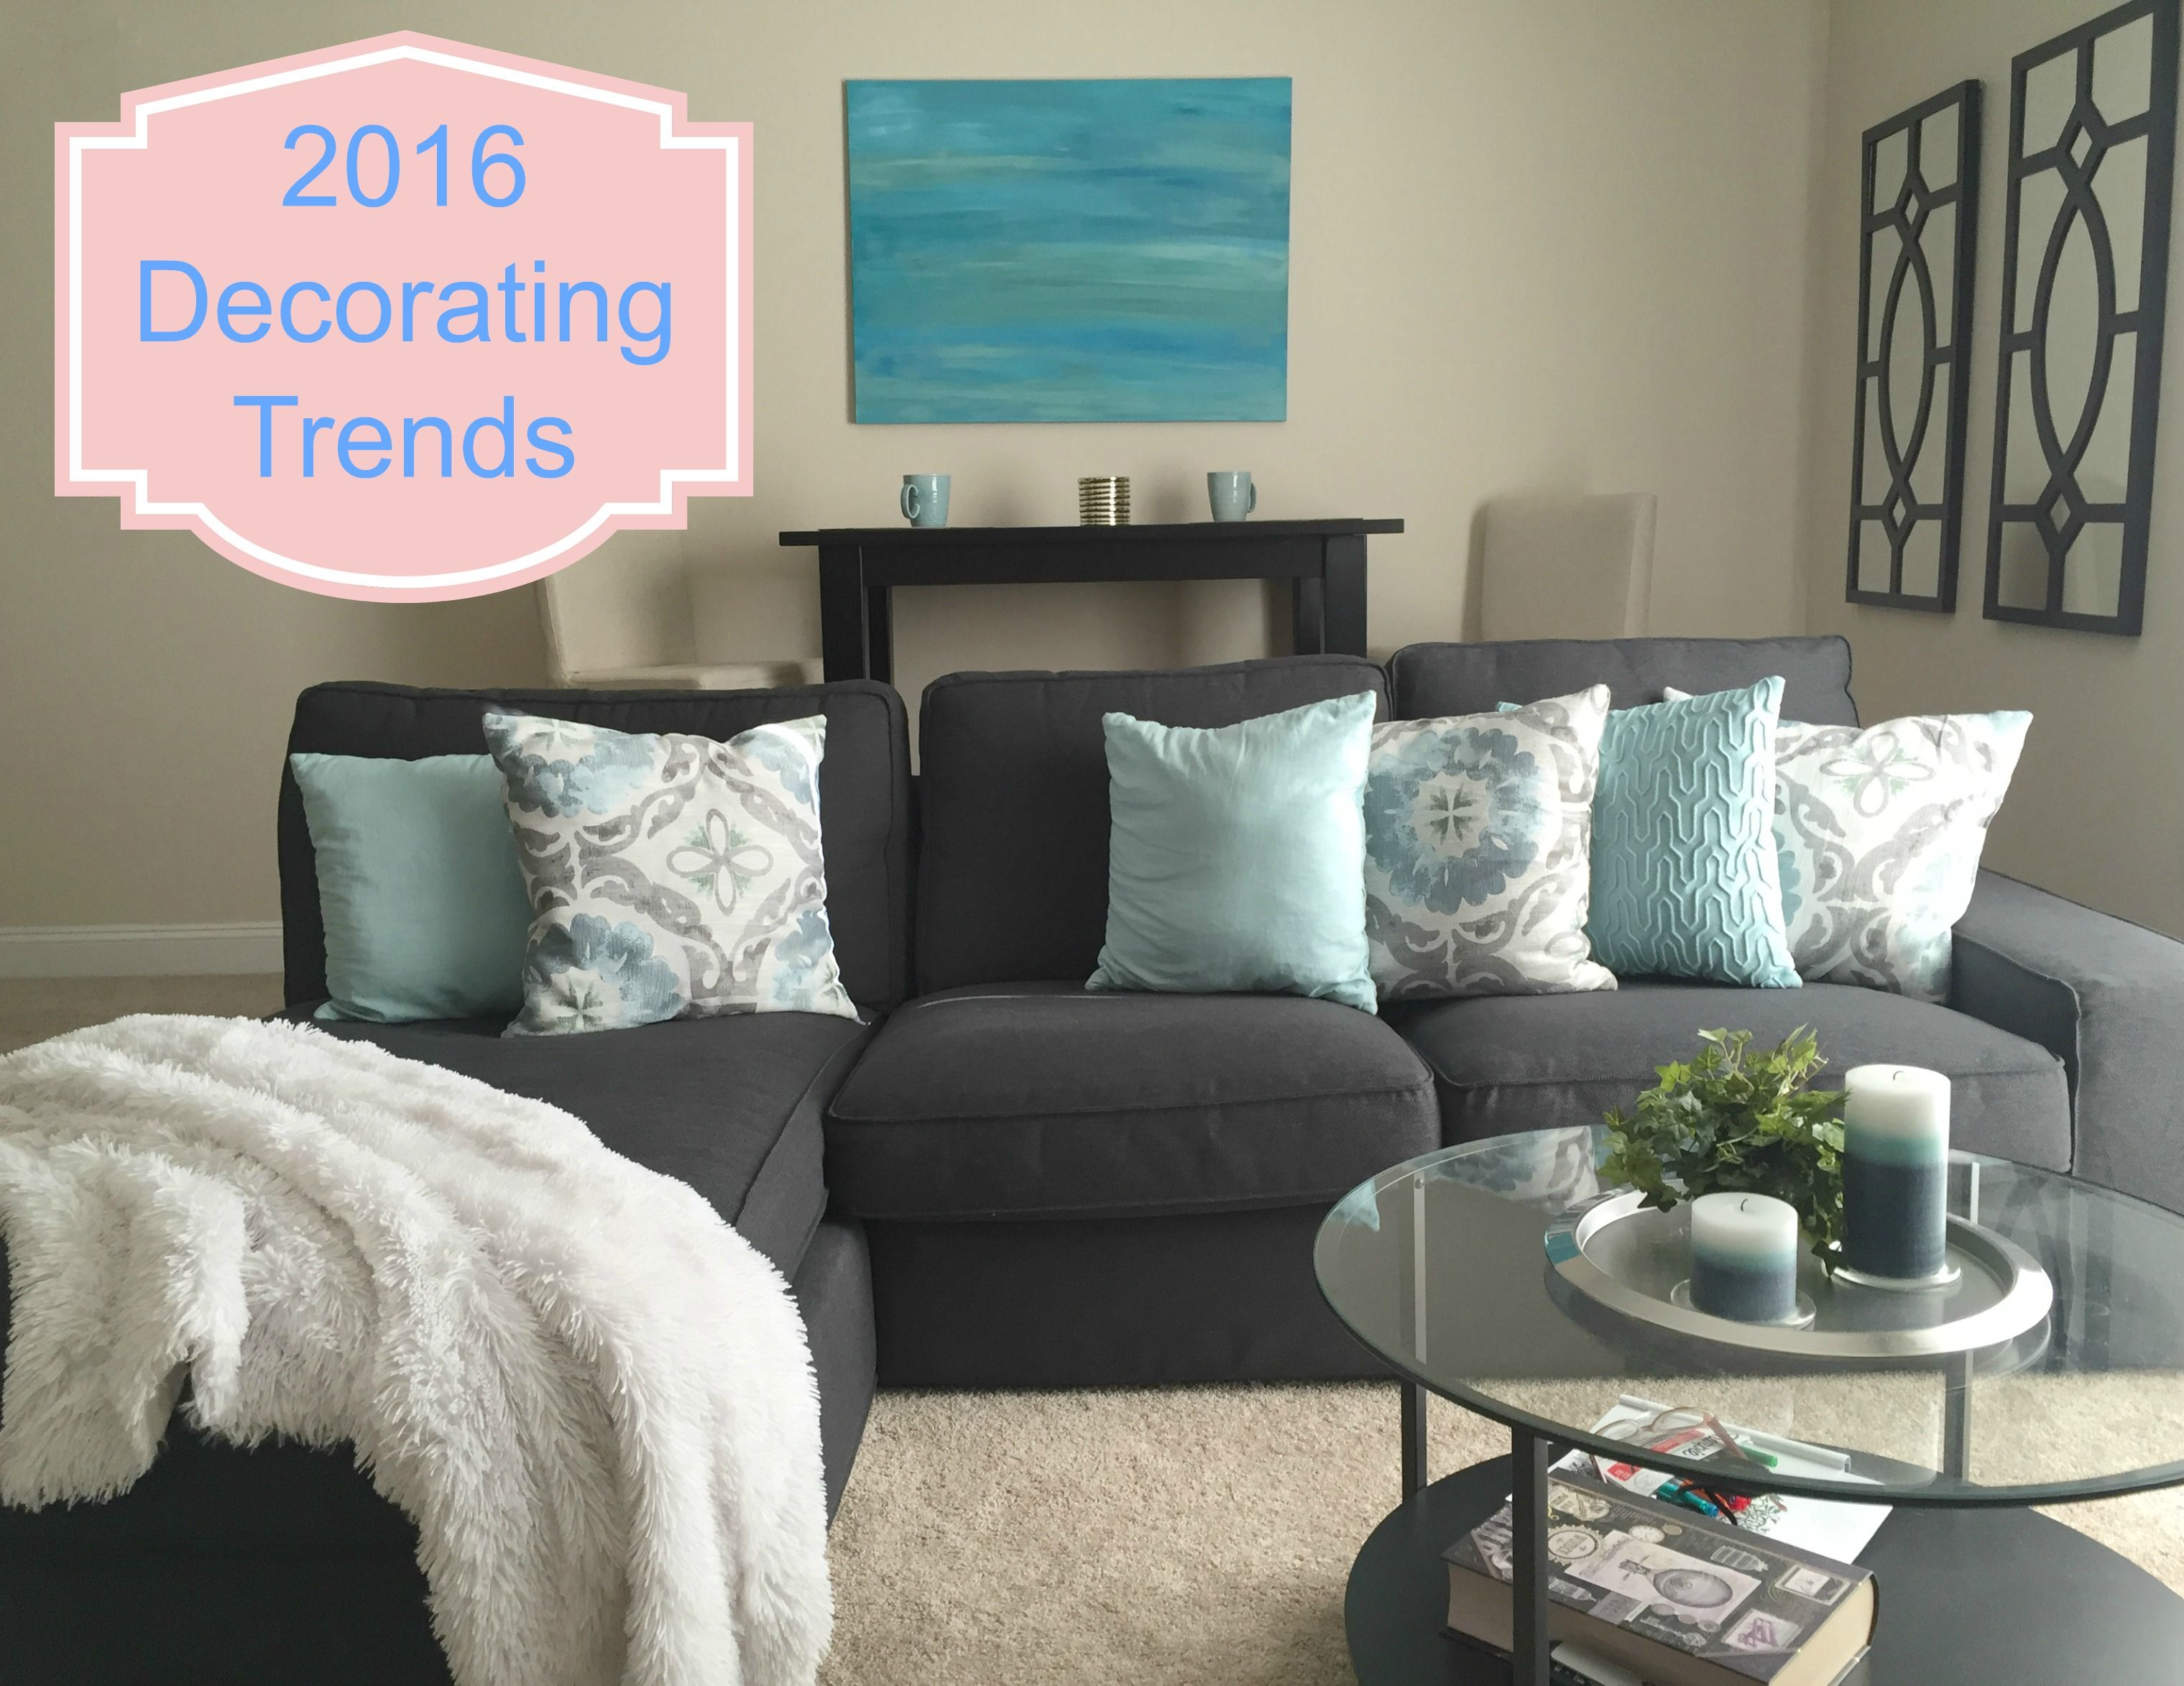 98+ New Home Decorating Trends - Home Decor Trends 2018, New Design ...